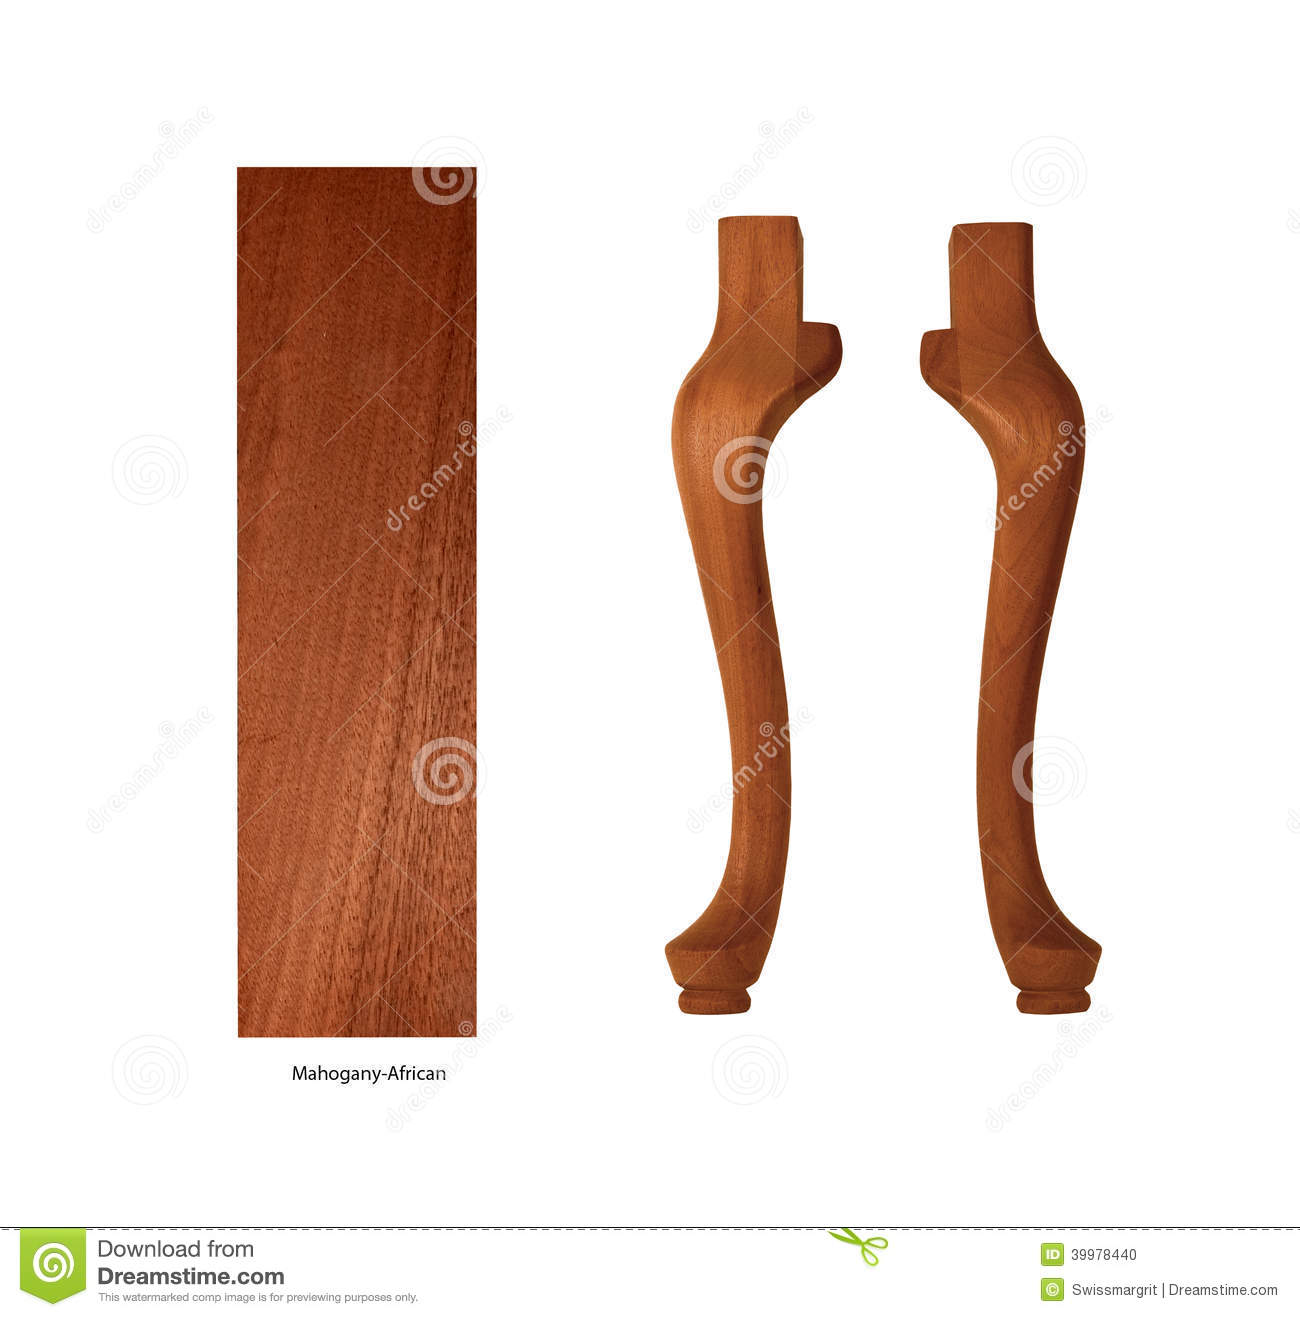 African Mahogany Panel And Table Legs On A White